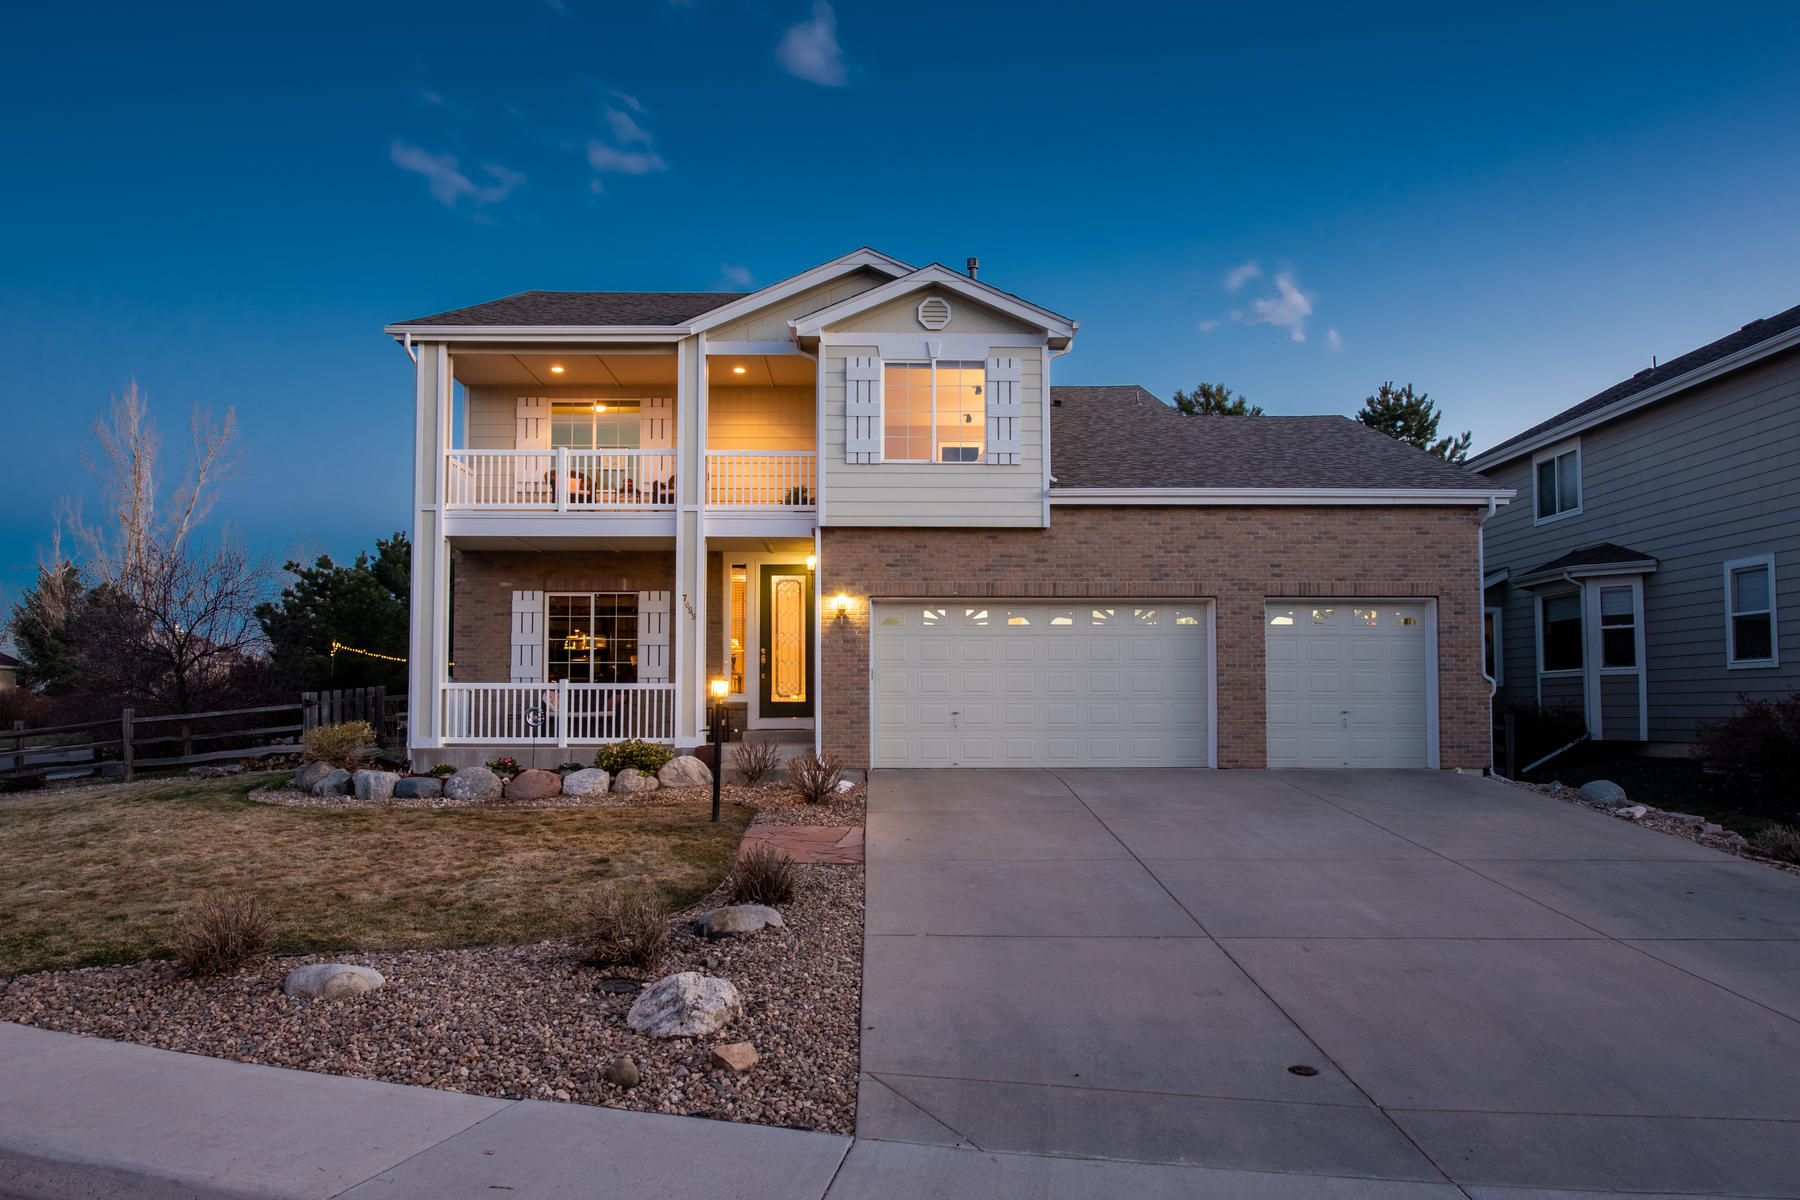 Single Family Homes for Sale at Incredible Value in Hillside 7099 S Garrison Street Littleton, Colorado 80128 United States